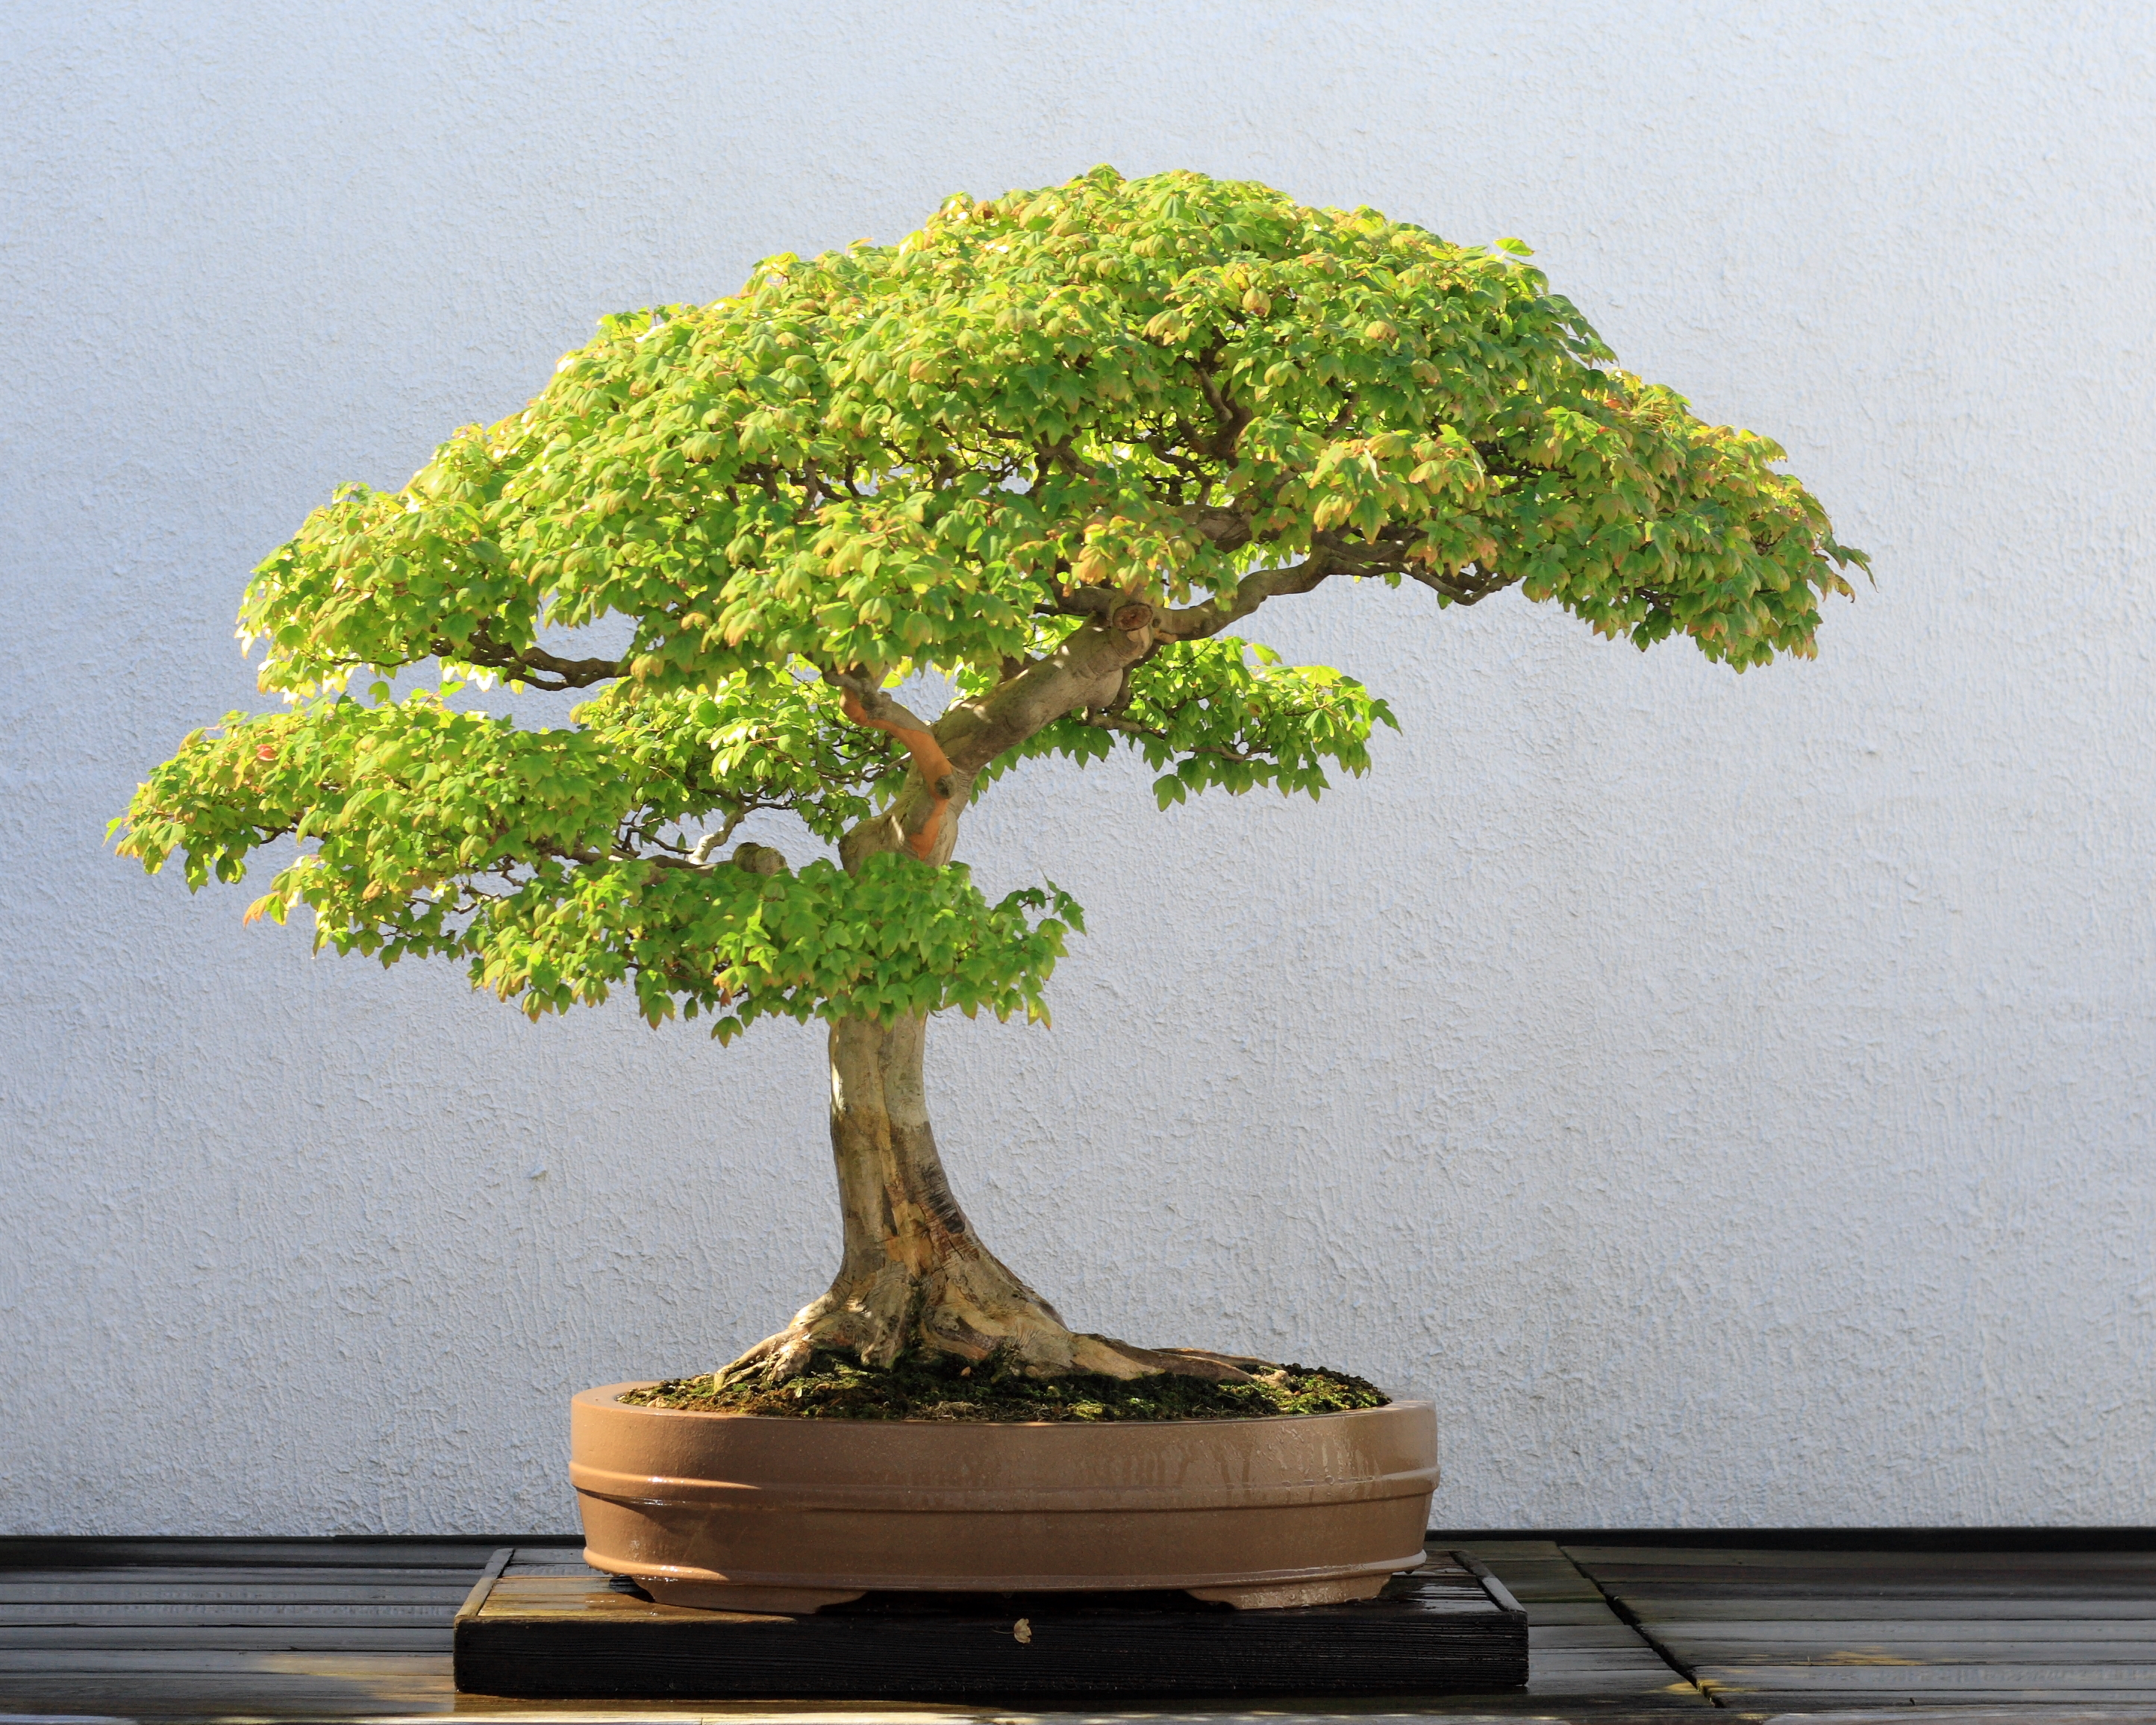 Trident_Maple_bonsai_52,_October_10,_2008